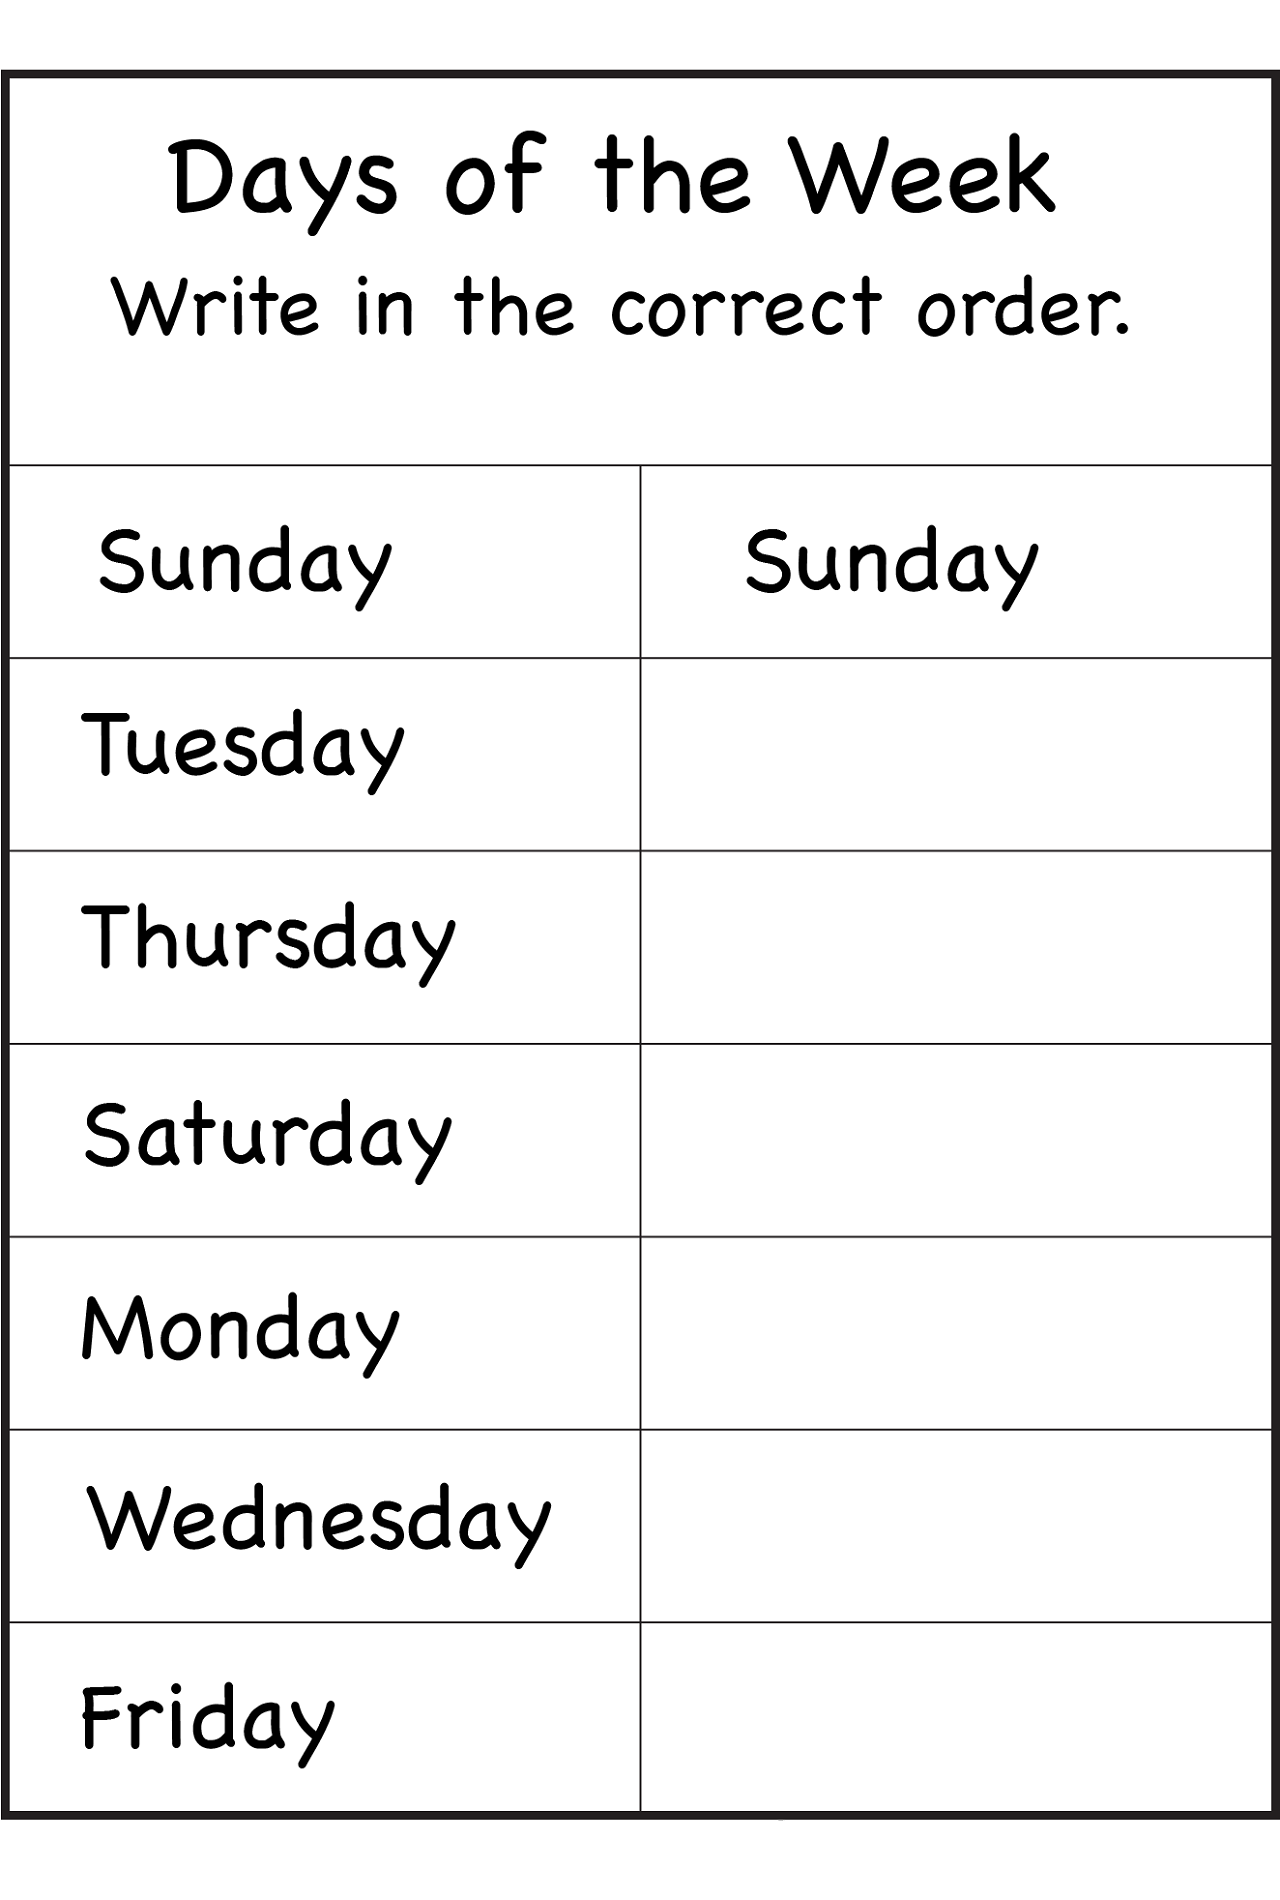 free days of the week worksheet order